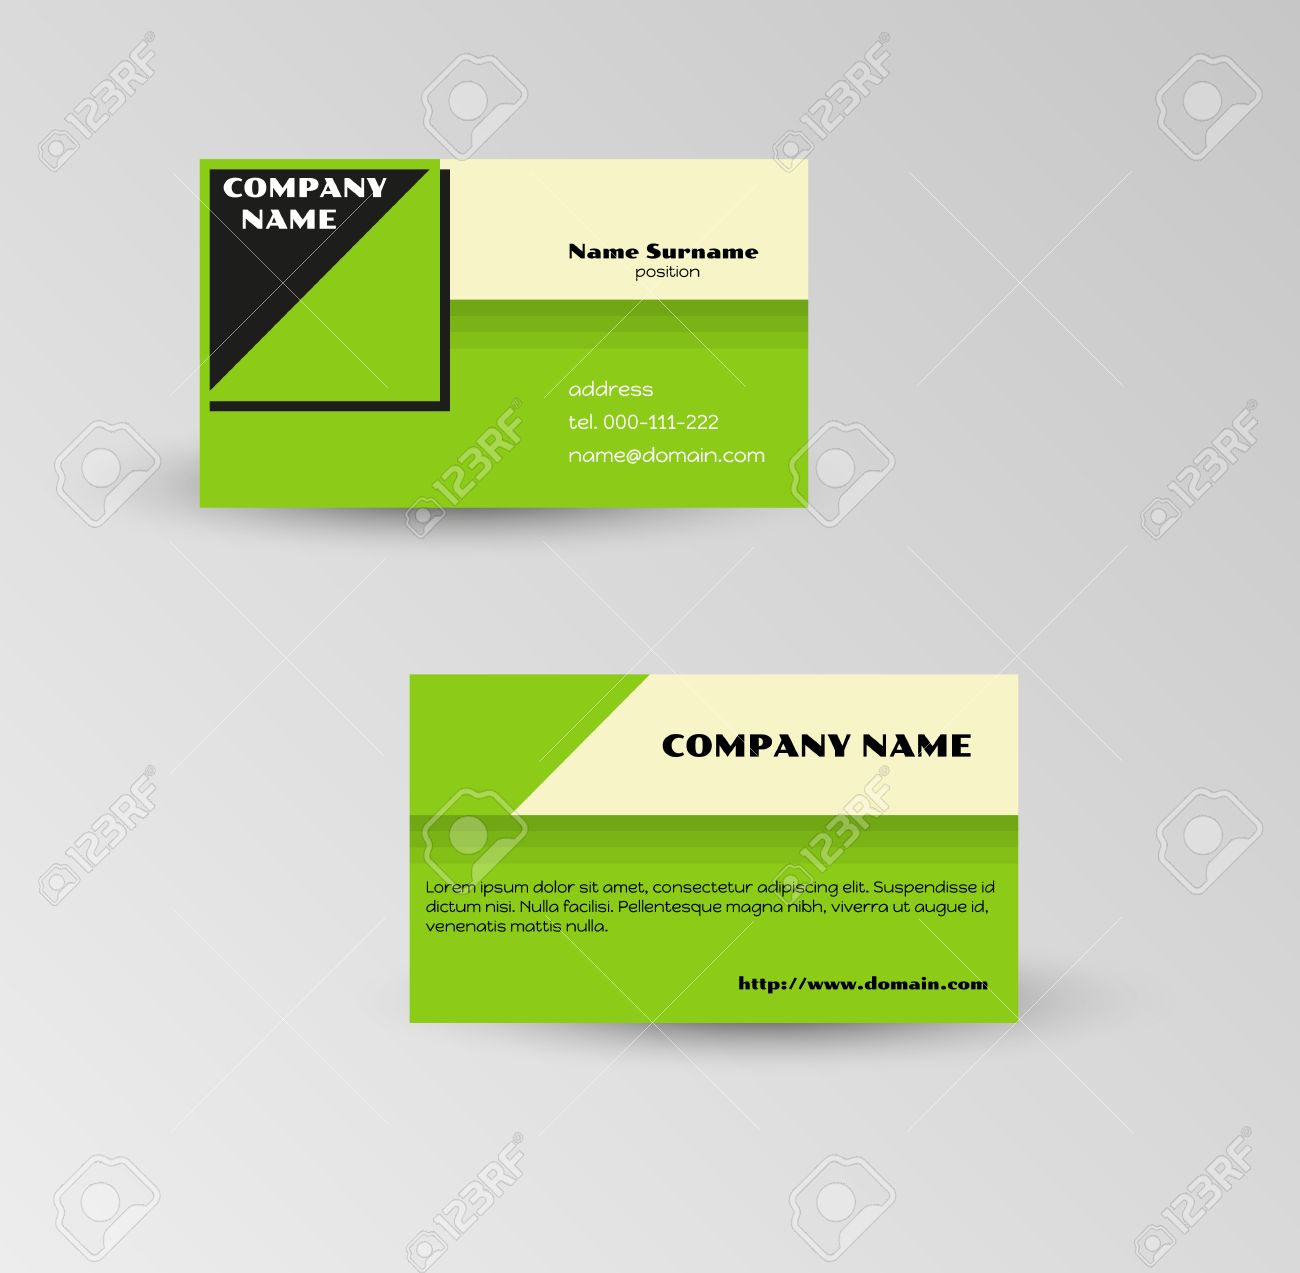 Modern green business card template on gray background royalty free modern green business card template on gray background stock vector 27872807 cheaphphosting Image collections